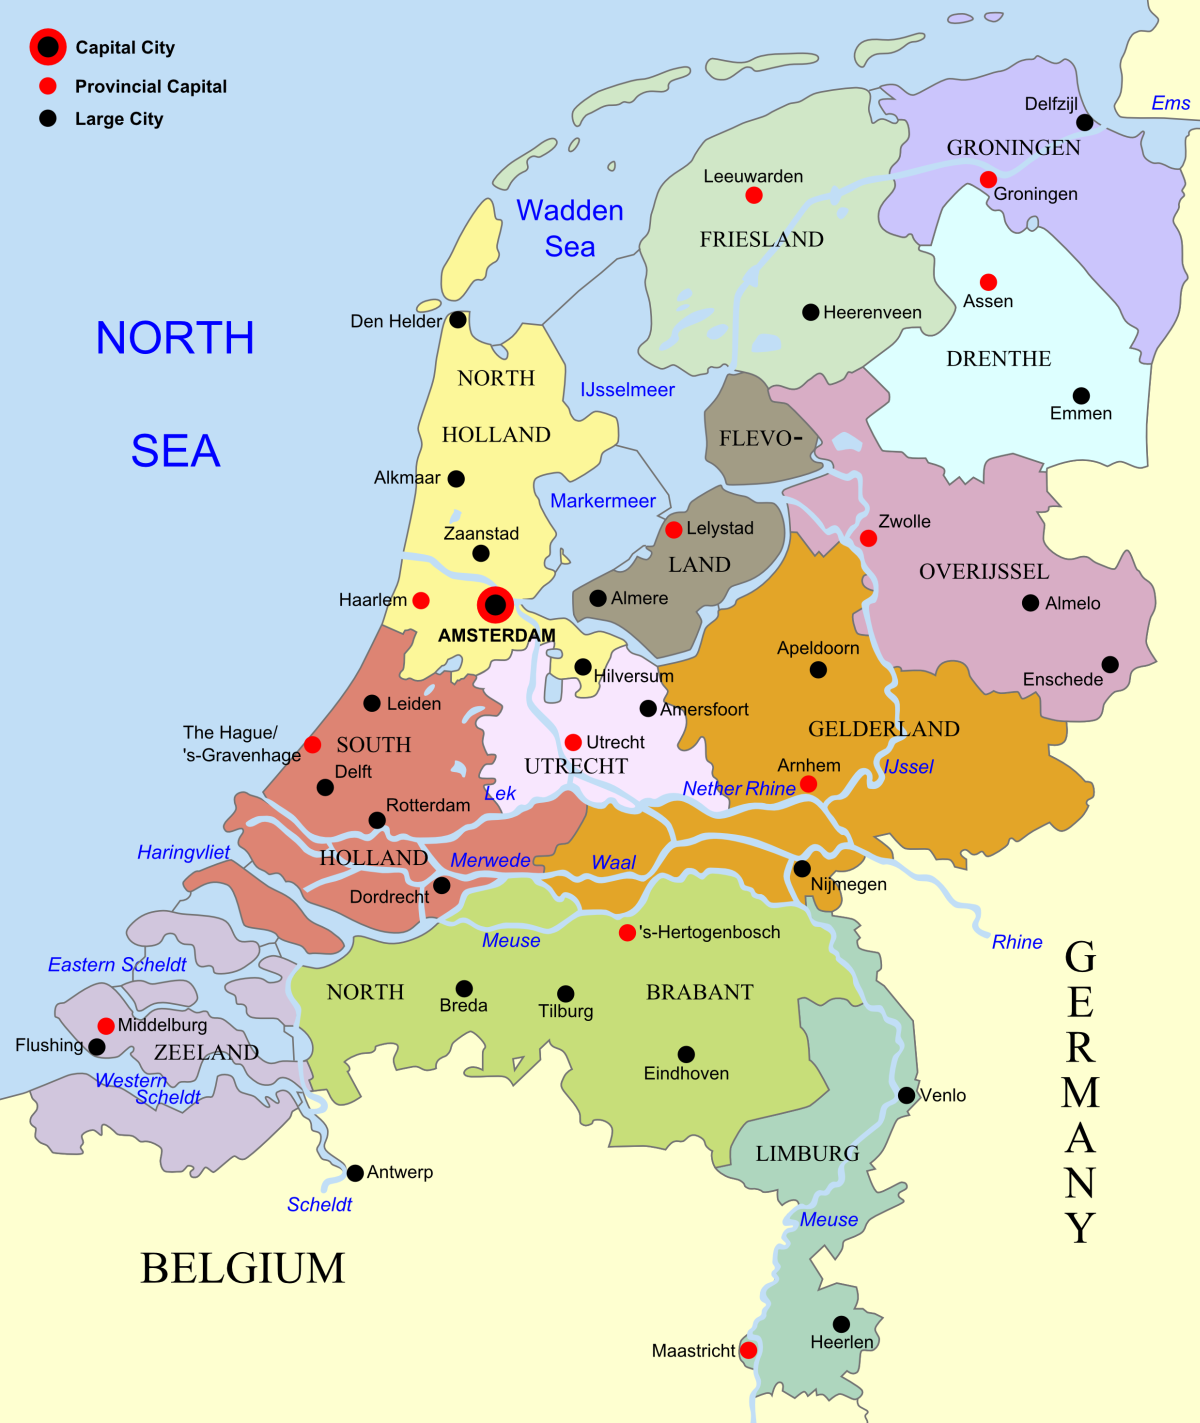 http://upload.wikimedia.org/wikipedia/commons/5/54/Netherlands_map_large.png